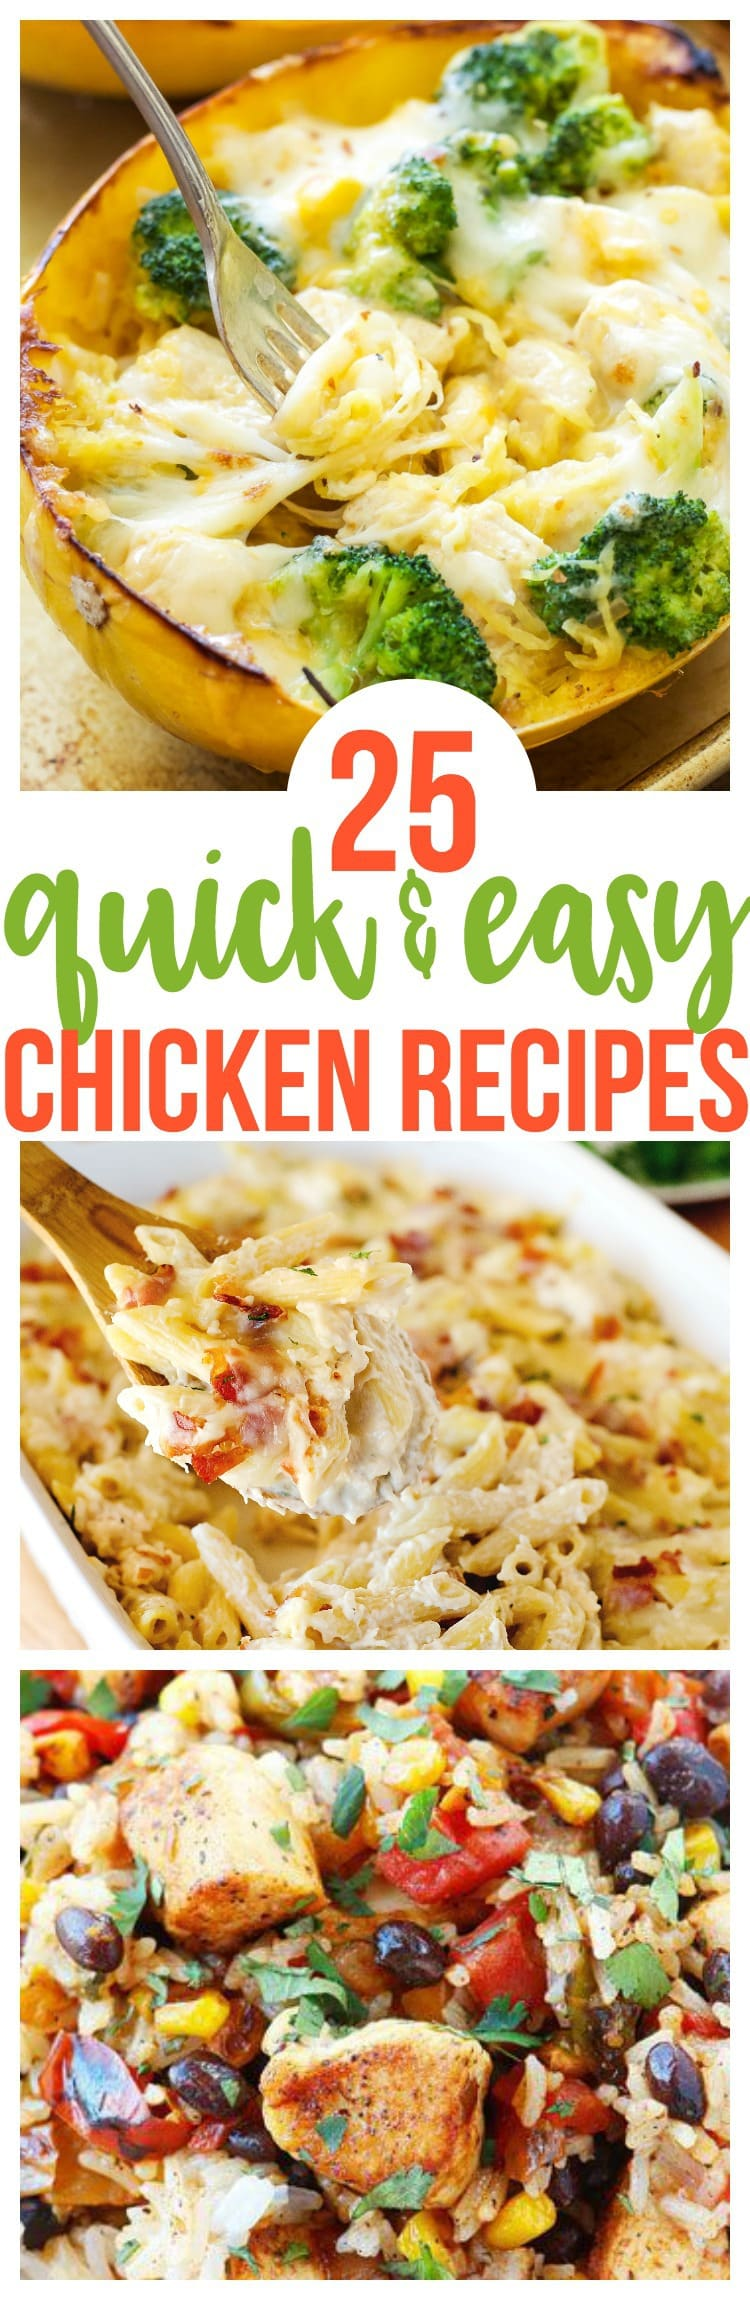 25 Quick and Easy Chicken Recipes - Courtney's Sweets